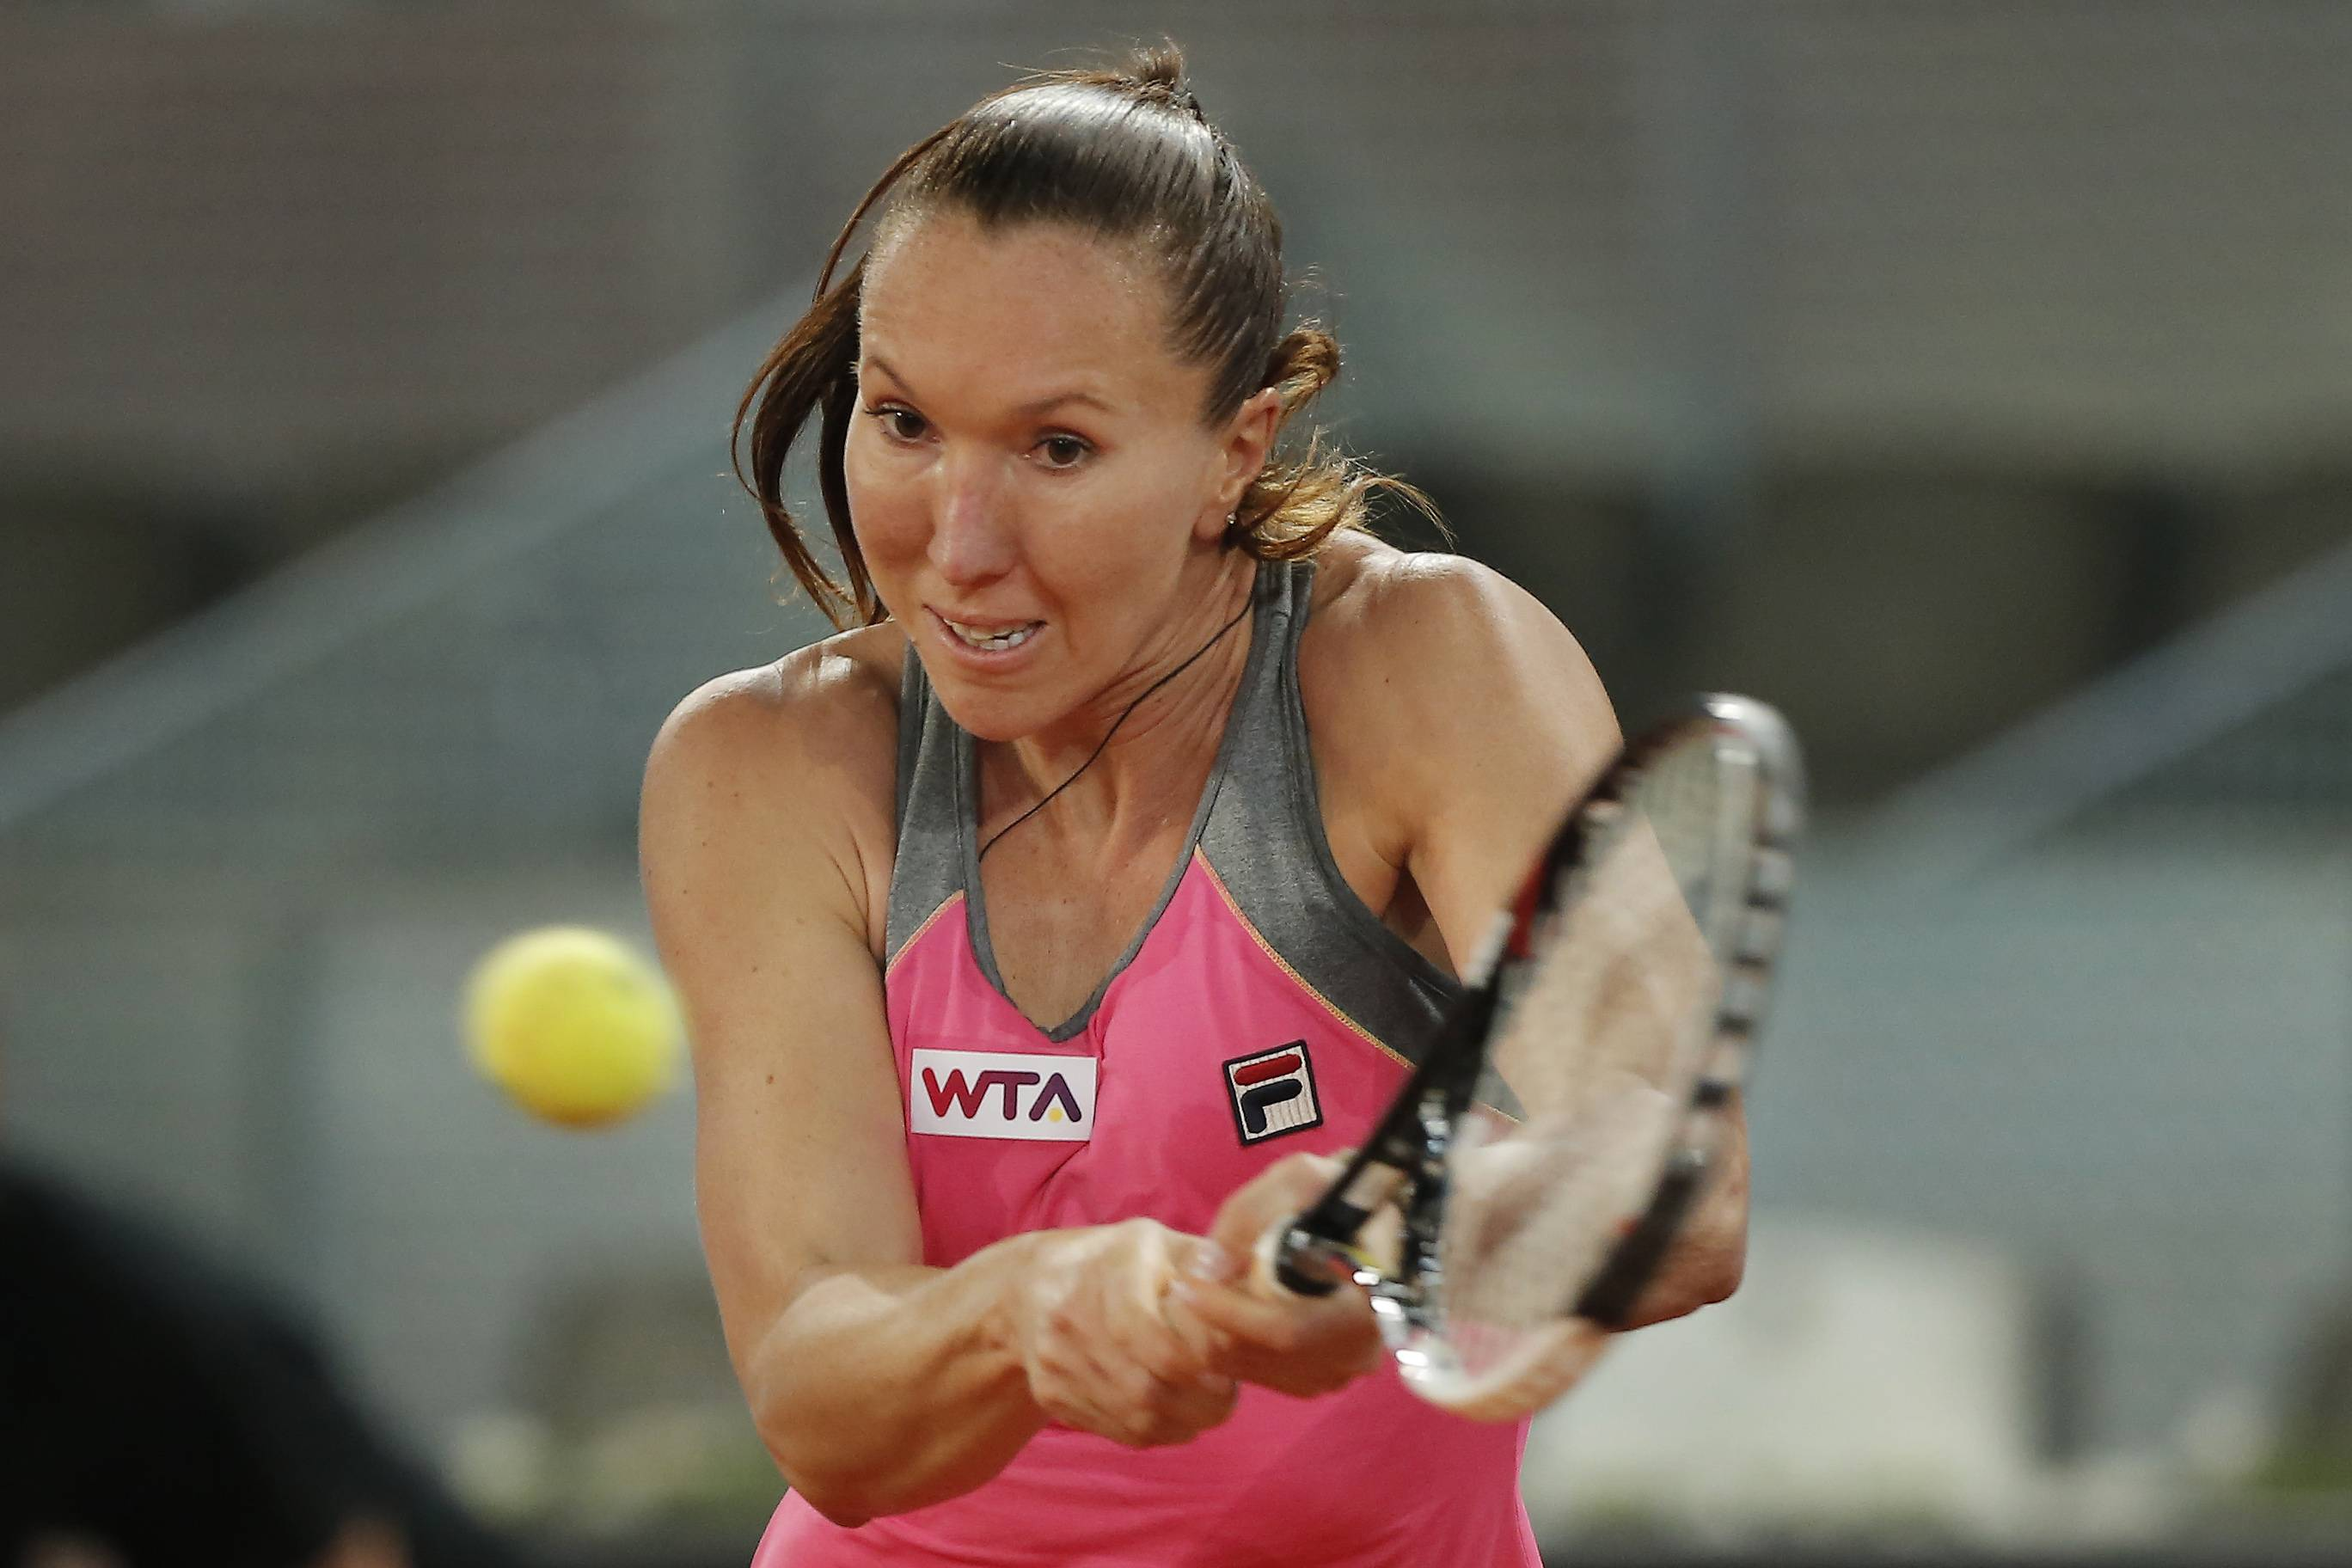 Jelena Jankovic from Serbia returns the ball during a Madrid Open tennis tournament match against Anastasia Pavlyuchenkova from Russia in Madrid, Spain, Thursday, May 8, 2014.